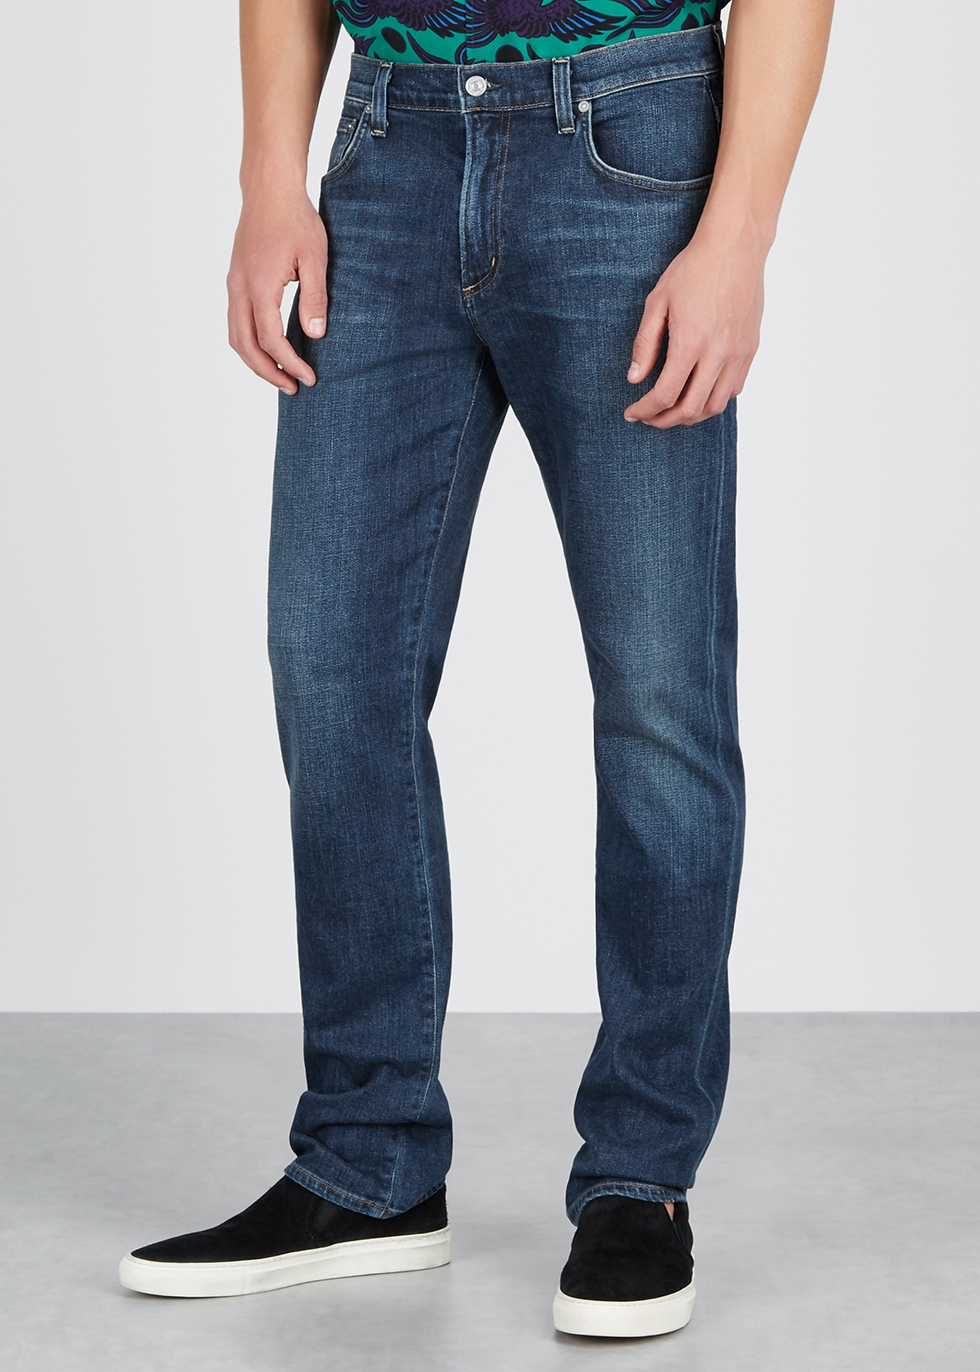 Gage straight-leg jeans - Citizens of Humanity